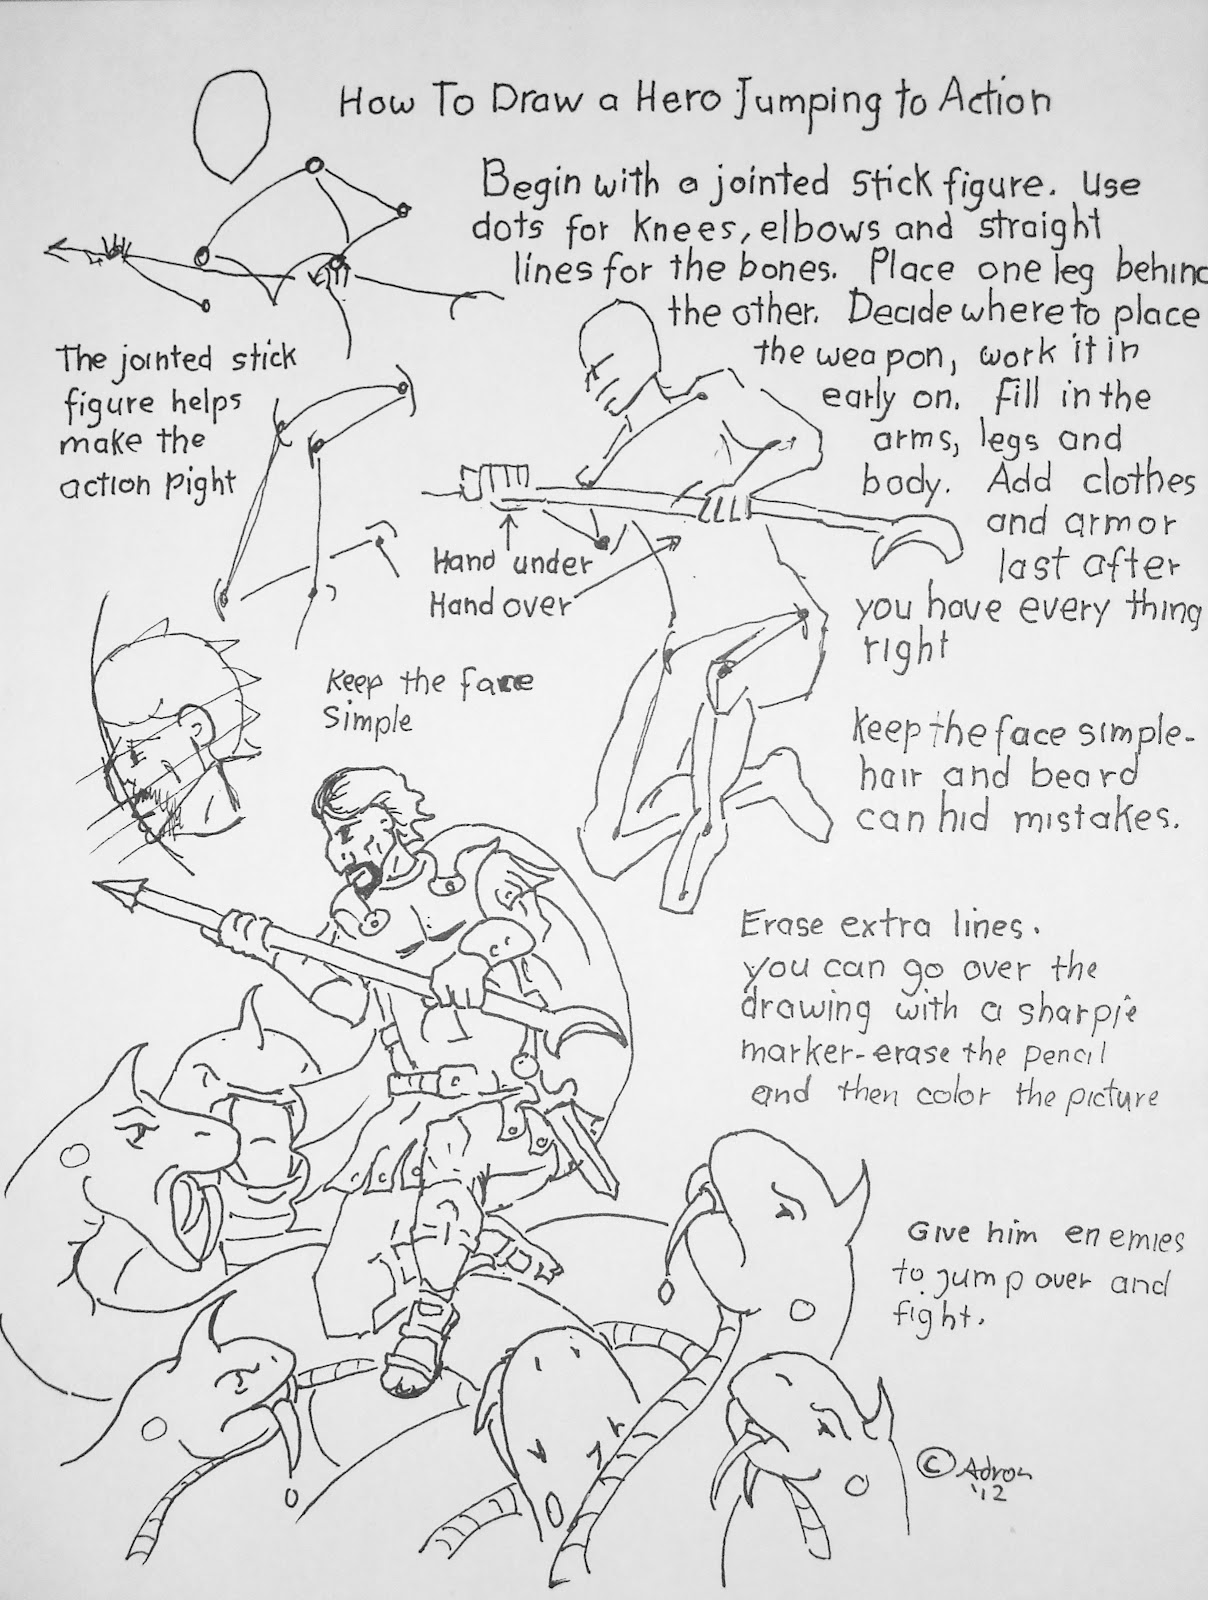 How to draw worksheets for the young artist august 2012 worksheet for how to draw a hero jumping into action robcynllc Choice Image